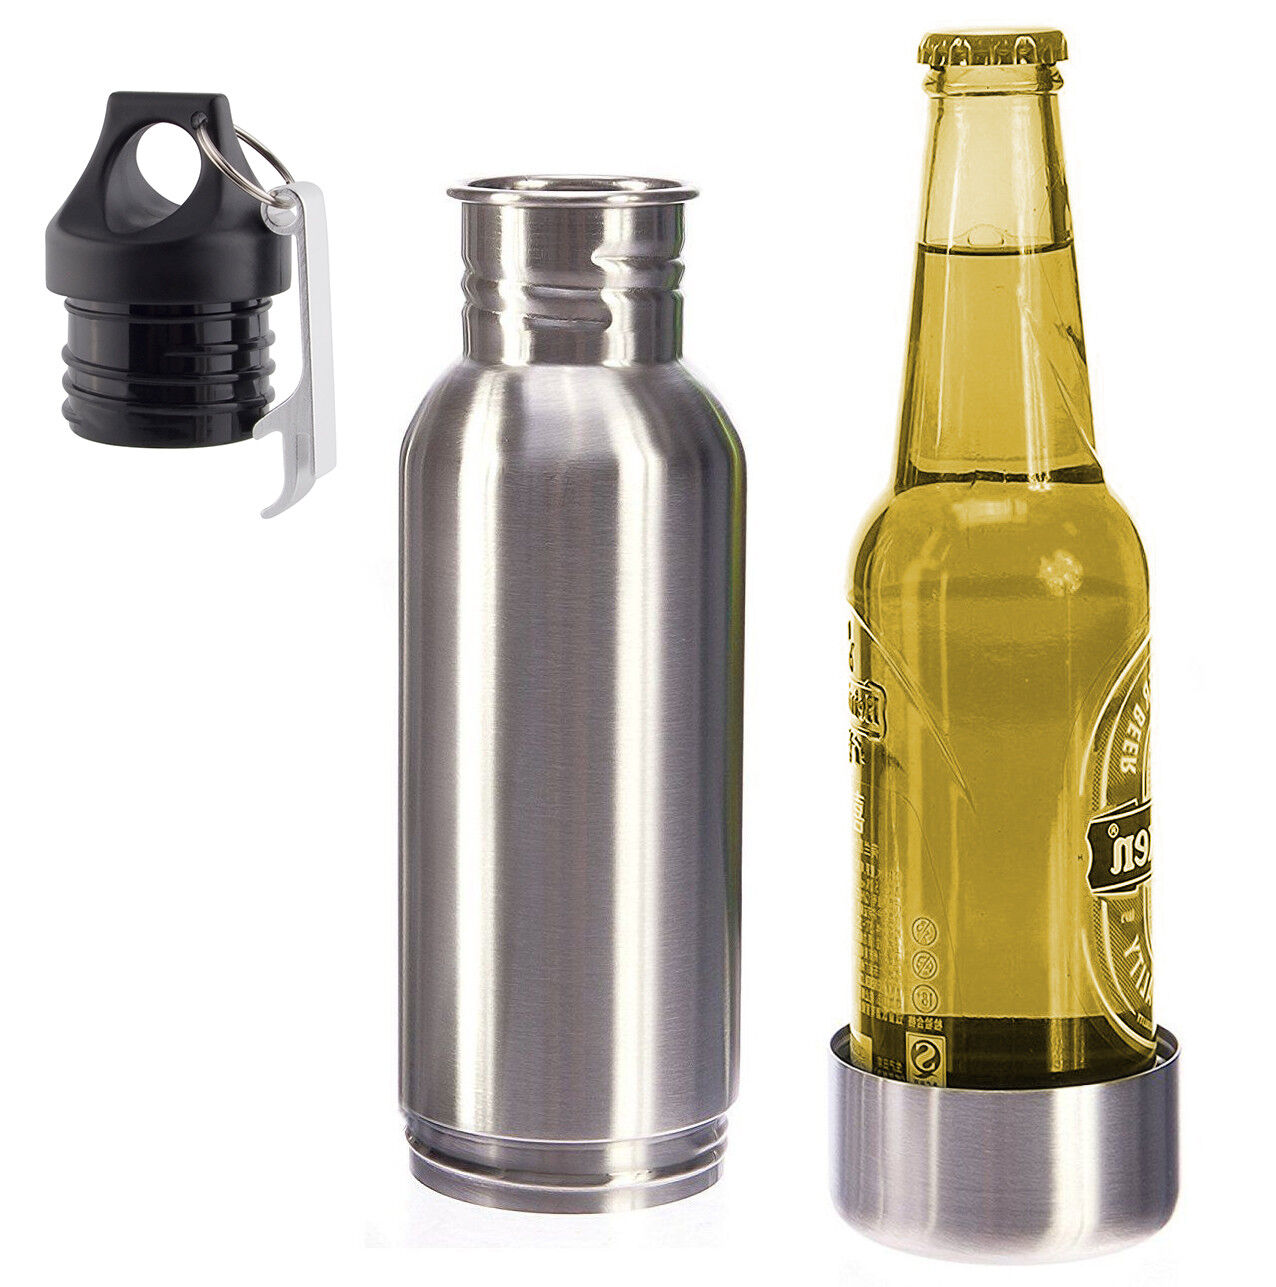 12oz Stainless Steel Beer Bottle Koozie Cooler Cold Beer Kee